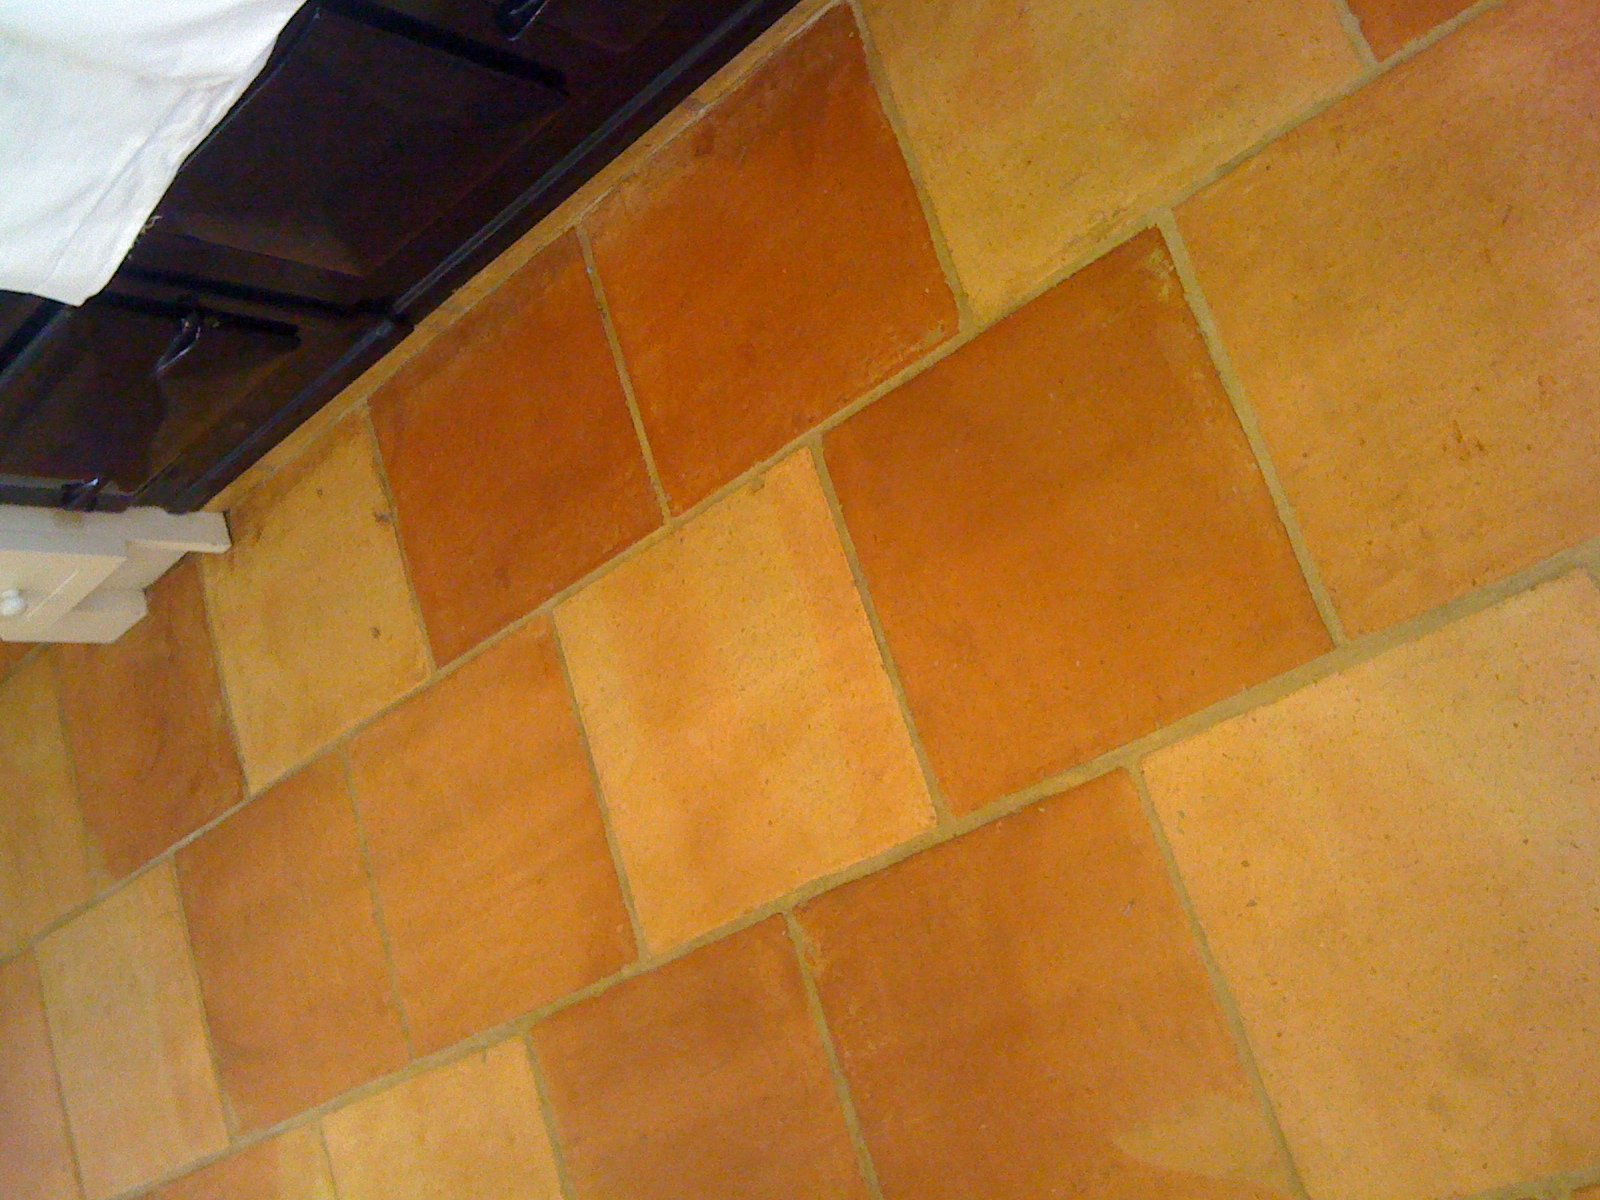 After Sandstone Floors Cleaning Services Berkshire from AbFabStoneFloorCleaning.co.uk